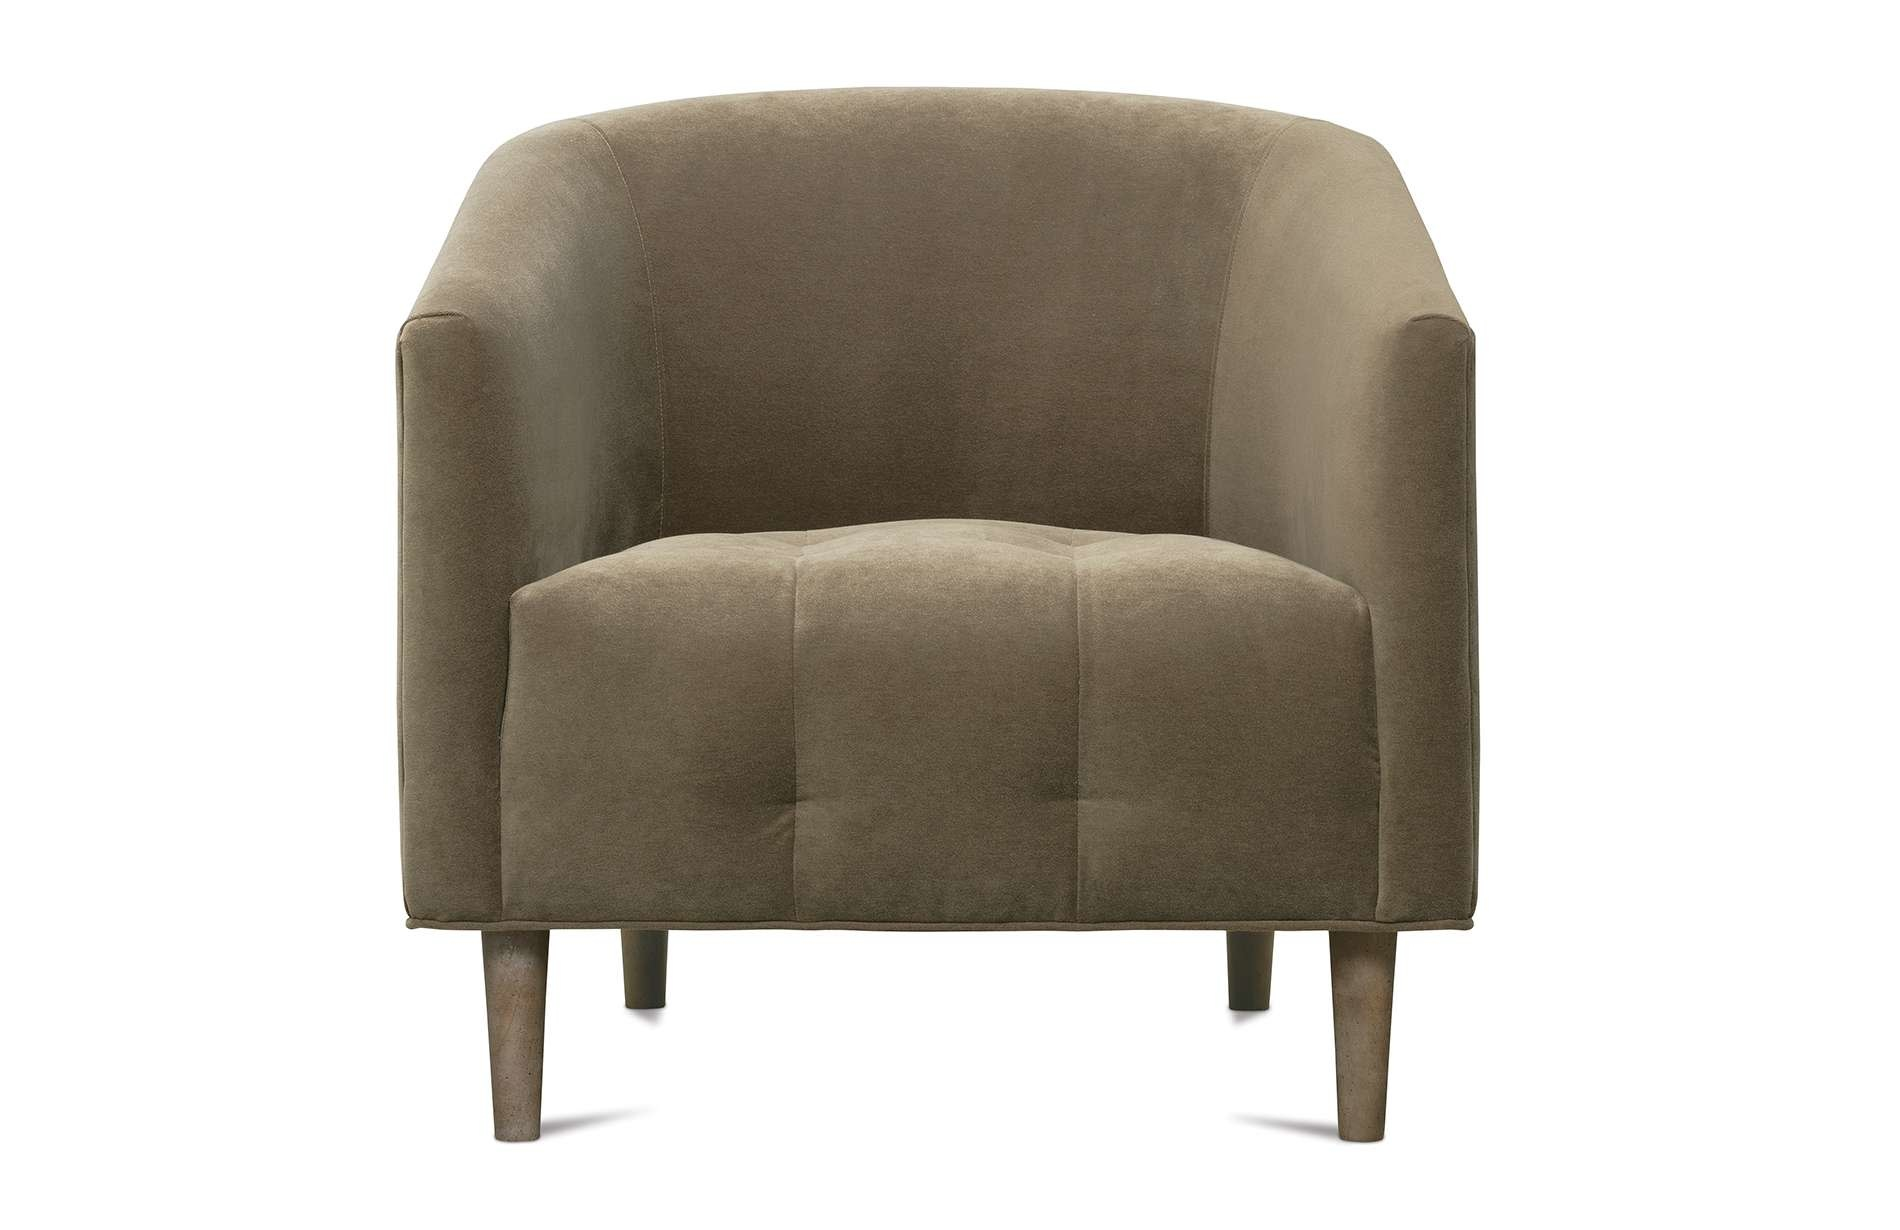 Pate Fabric Chair